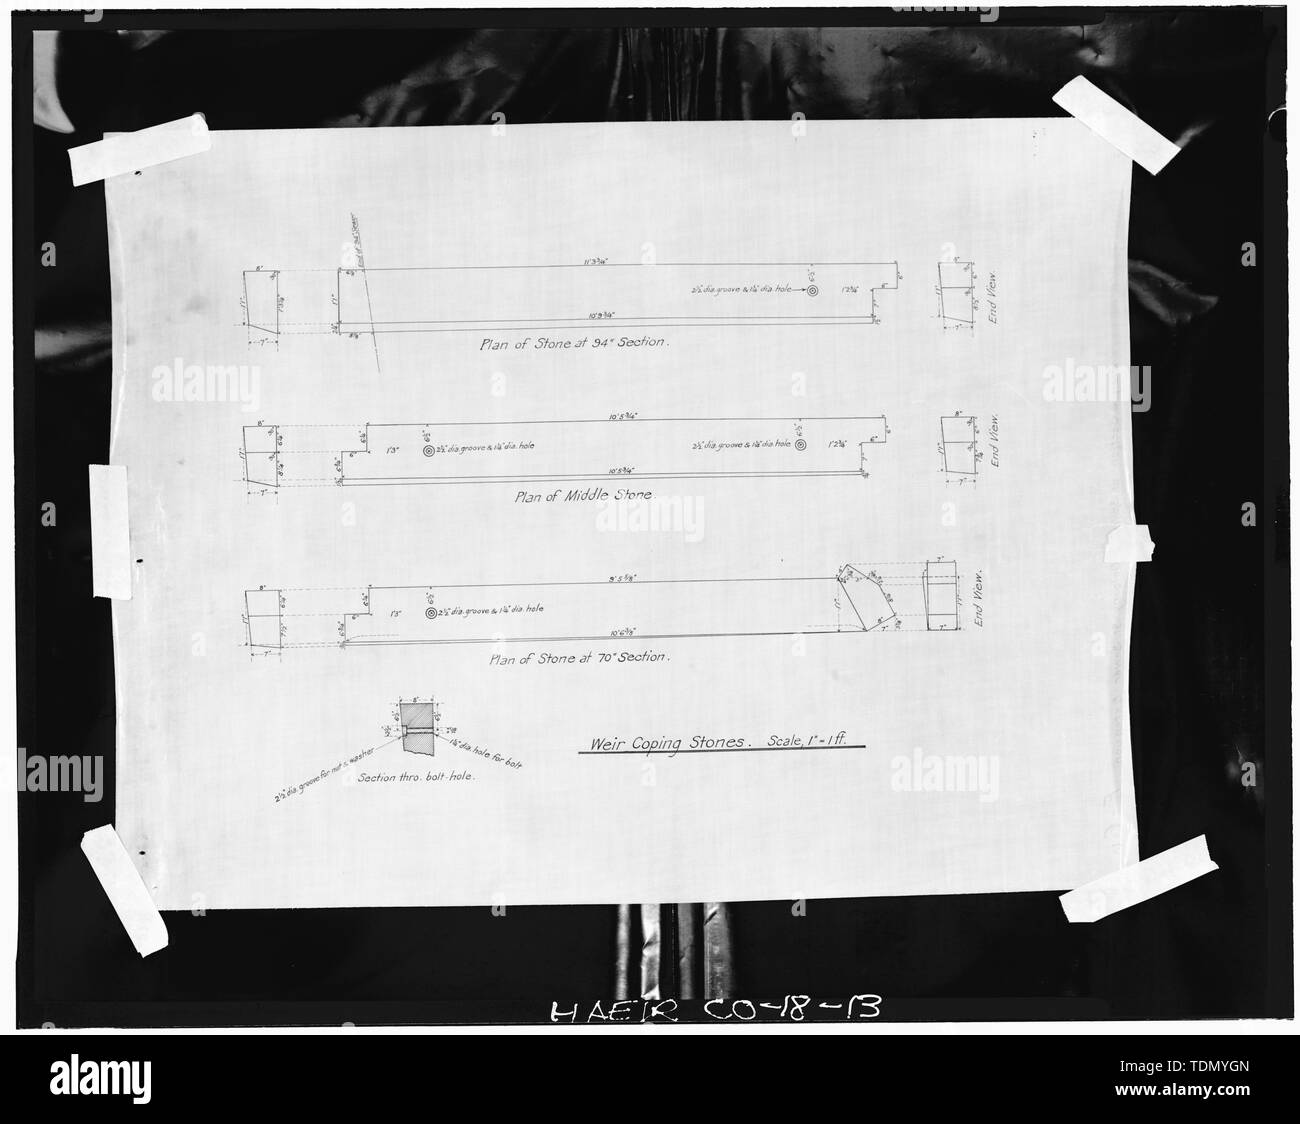 PLAN FOR WEIR COPING STONES. THESE ARE THE GRANITE STONES VISIBLE INSIDE THE OVERFLOW CHAMBER. - Thirty-first Street Overflow Structure, Thirty-first Street, Denver, Denver County, CO - Stock Image